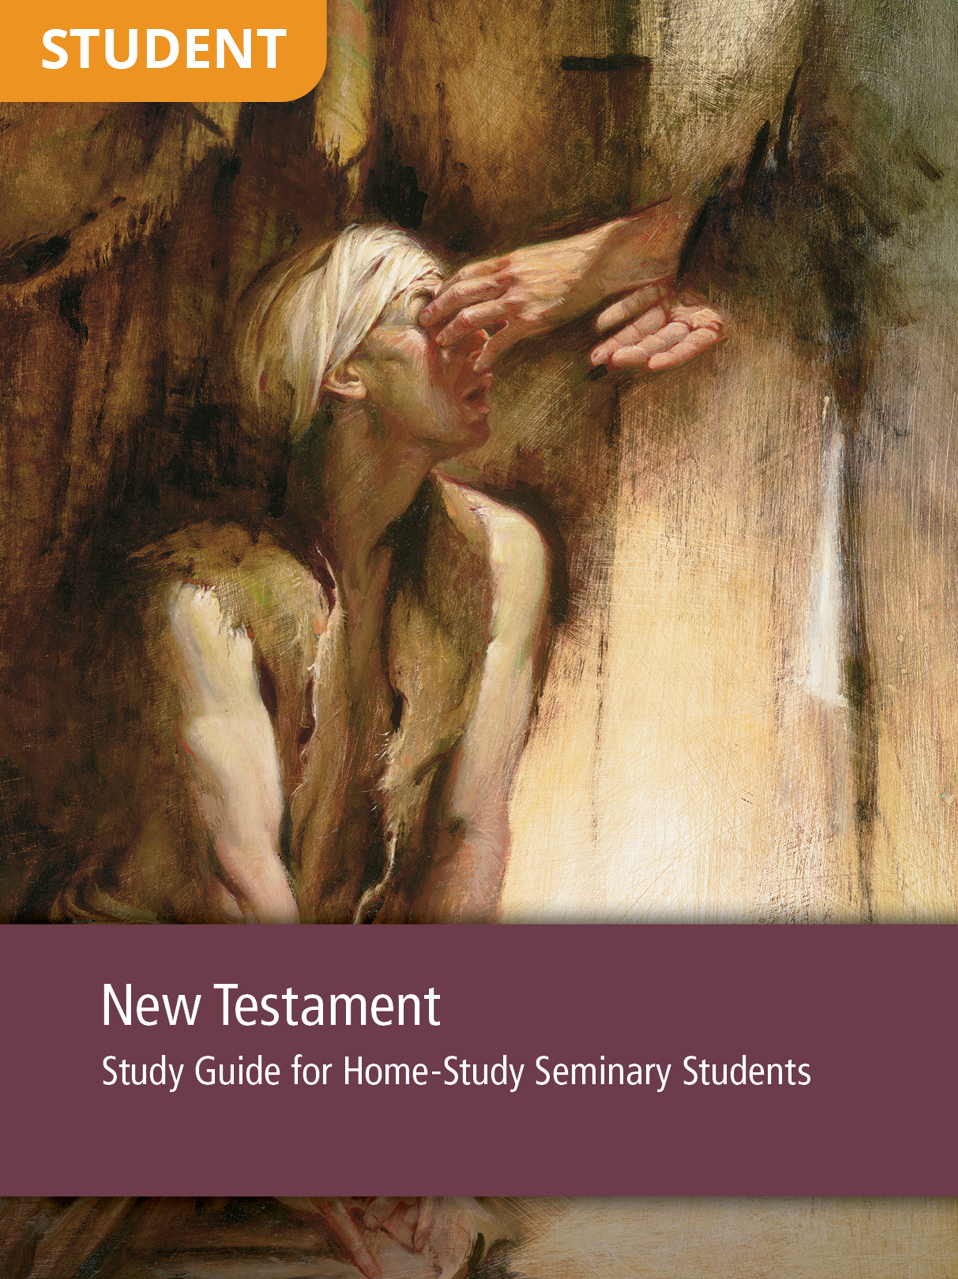 New Testament Study Guide for Home-Study Seminary Students